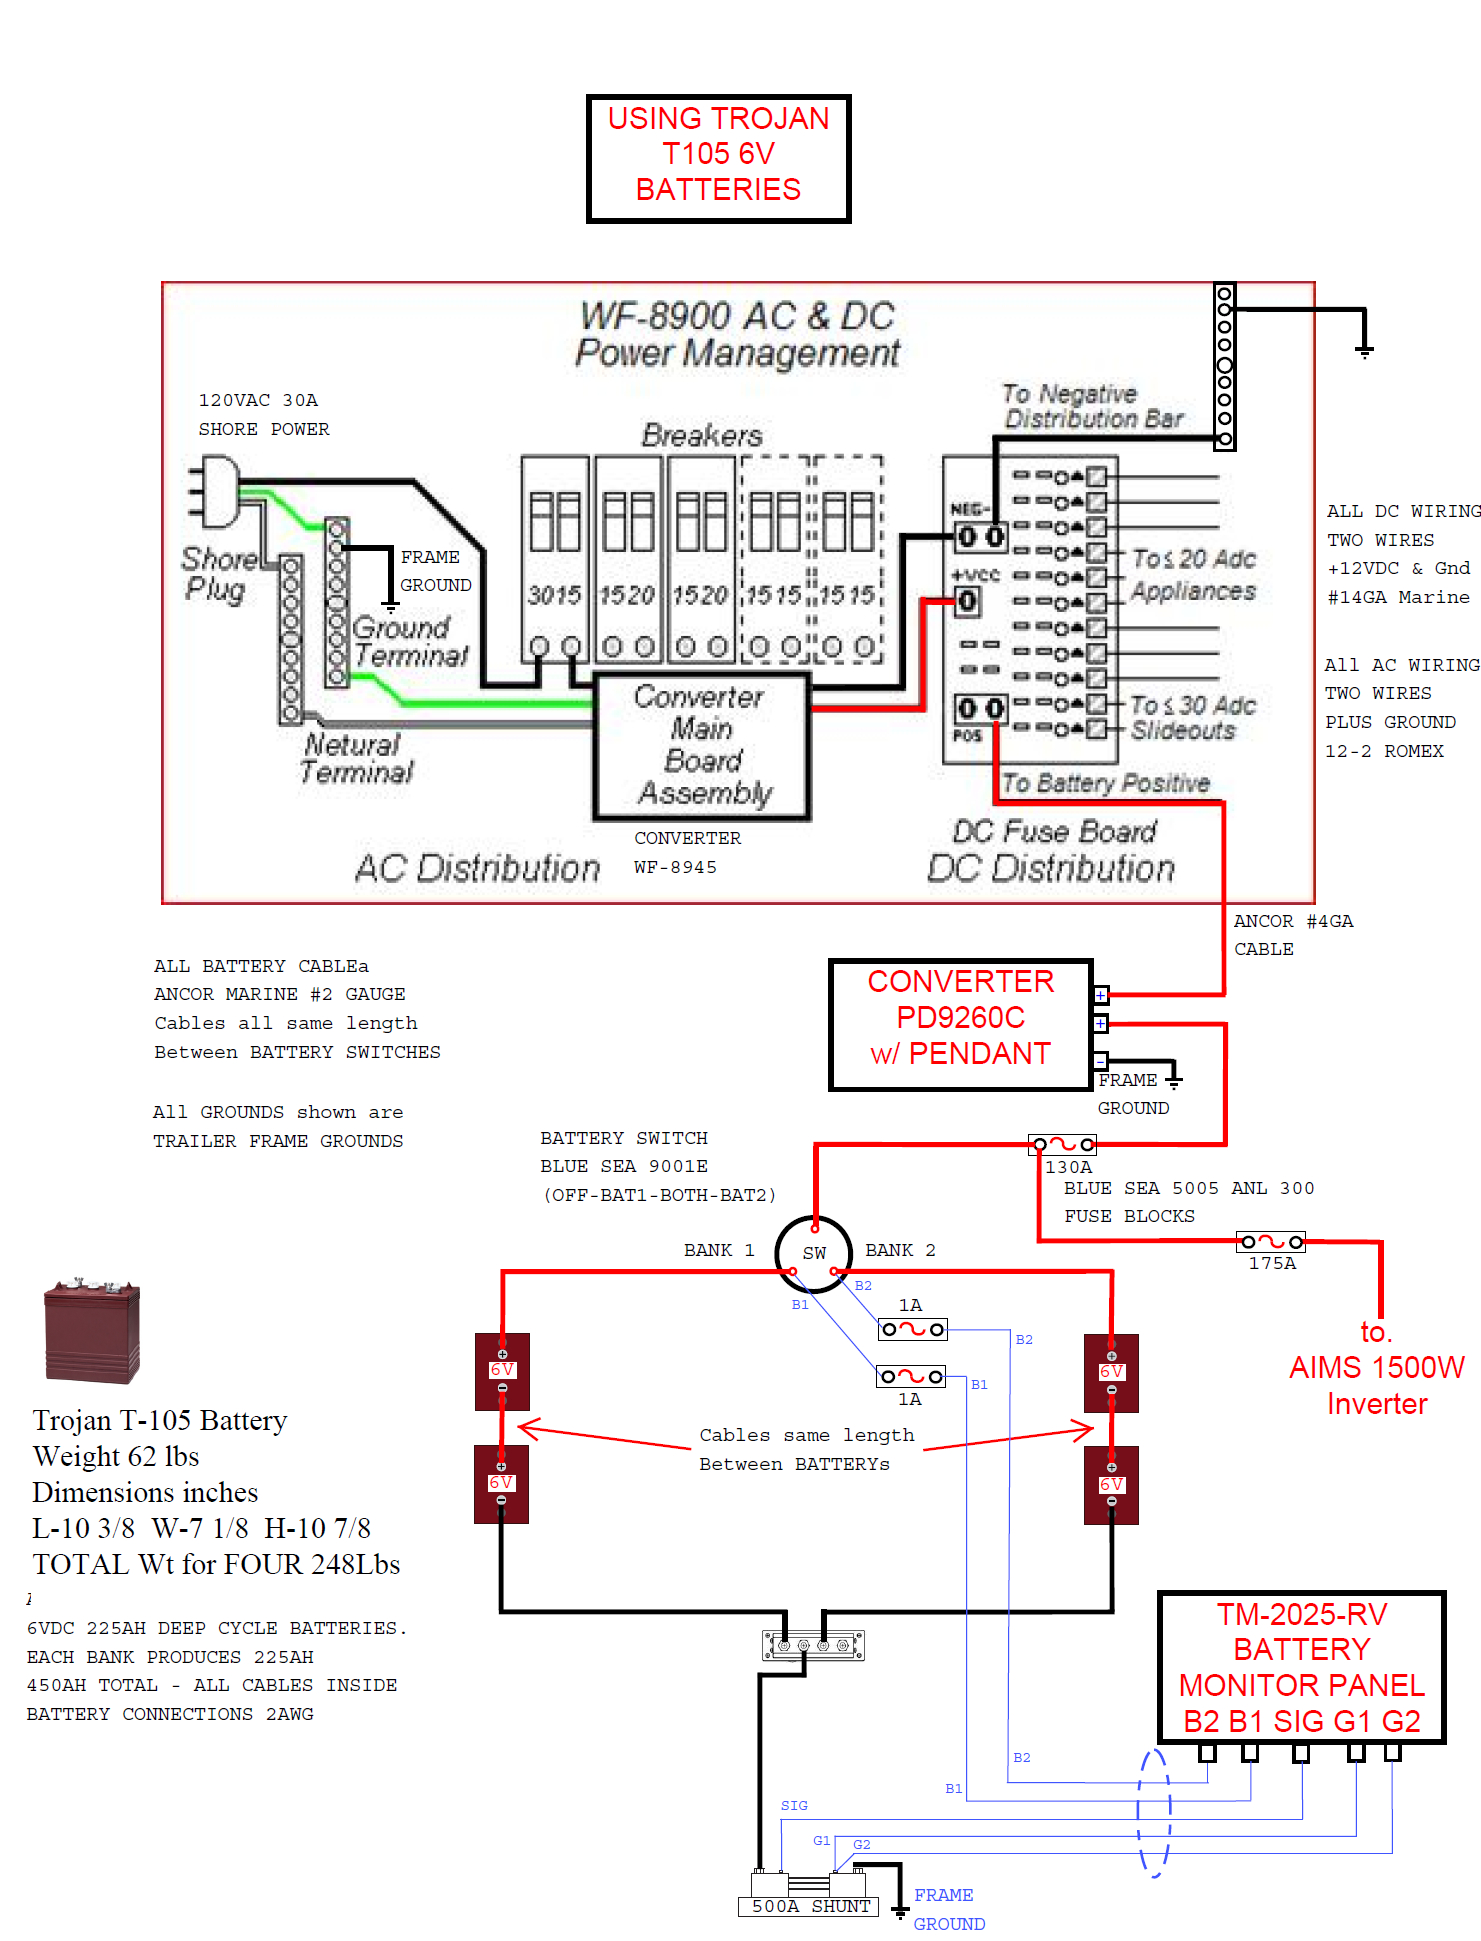 Dual Battery Disconnect Switch - Jayco Rv Owners Forum - Trailer Battery Wiring Diagram